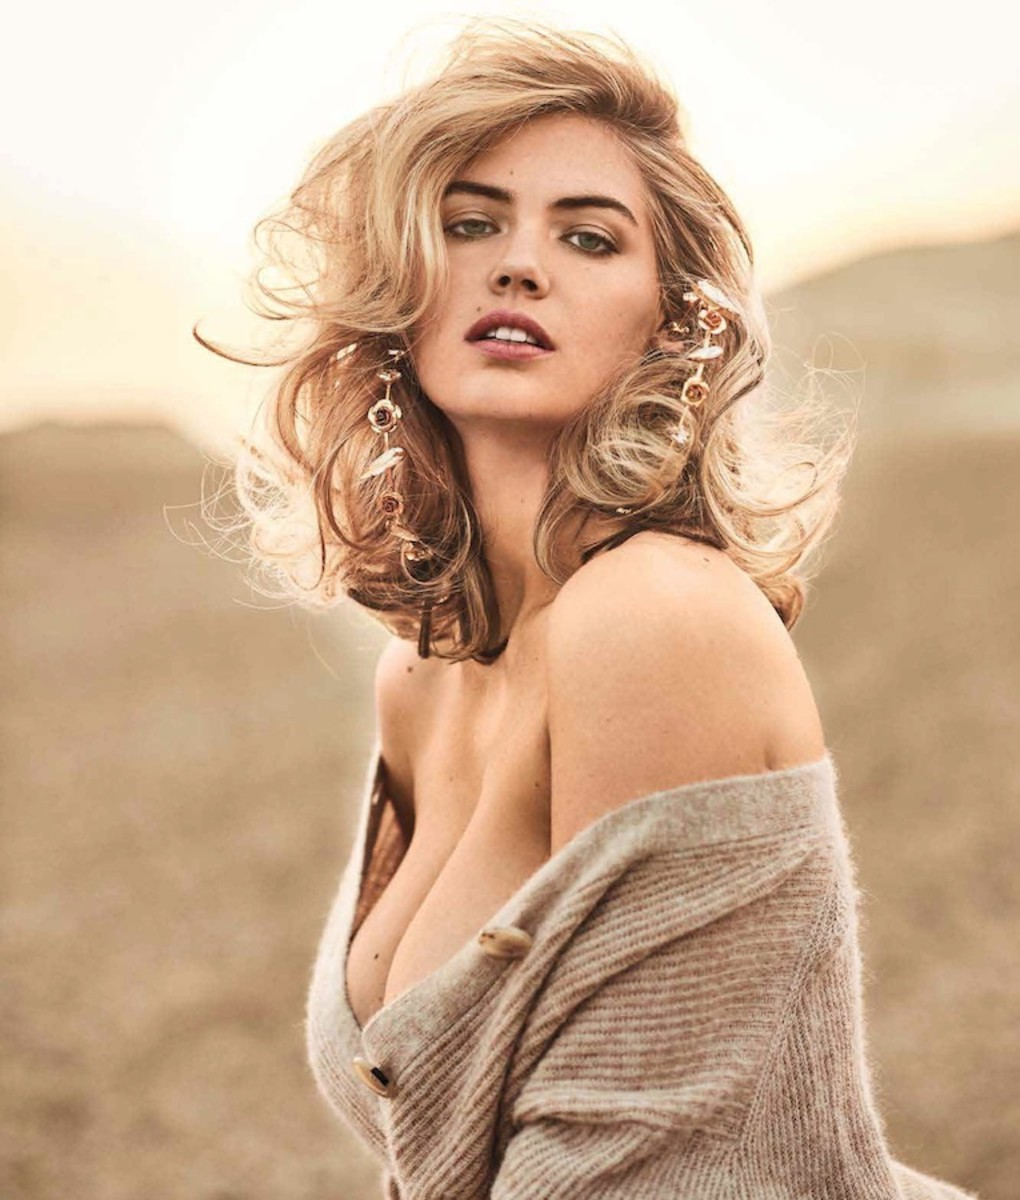 Kate Upton on Photoshoot